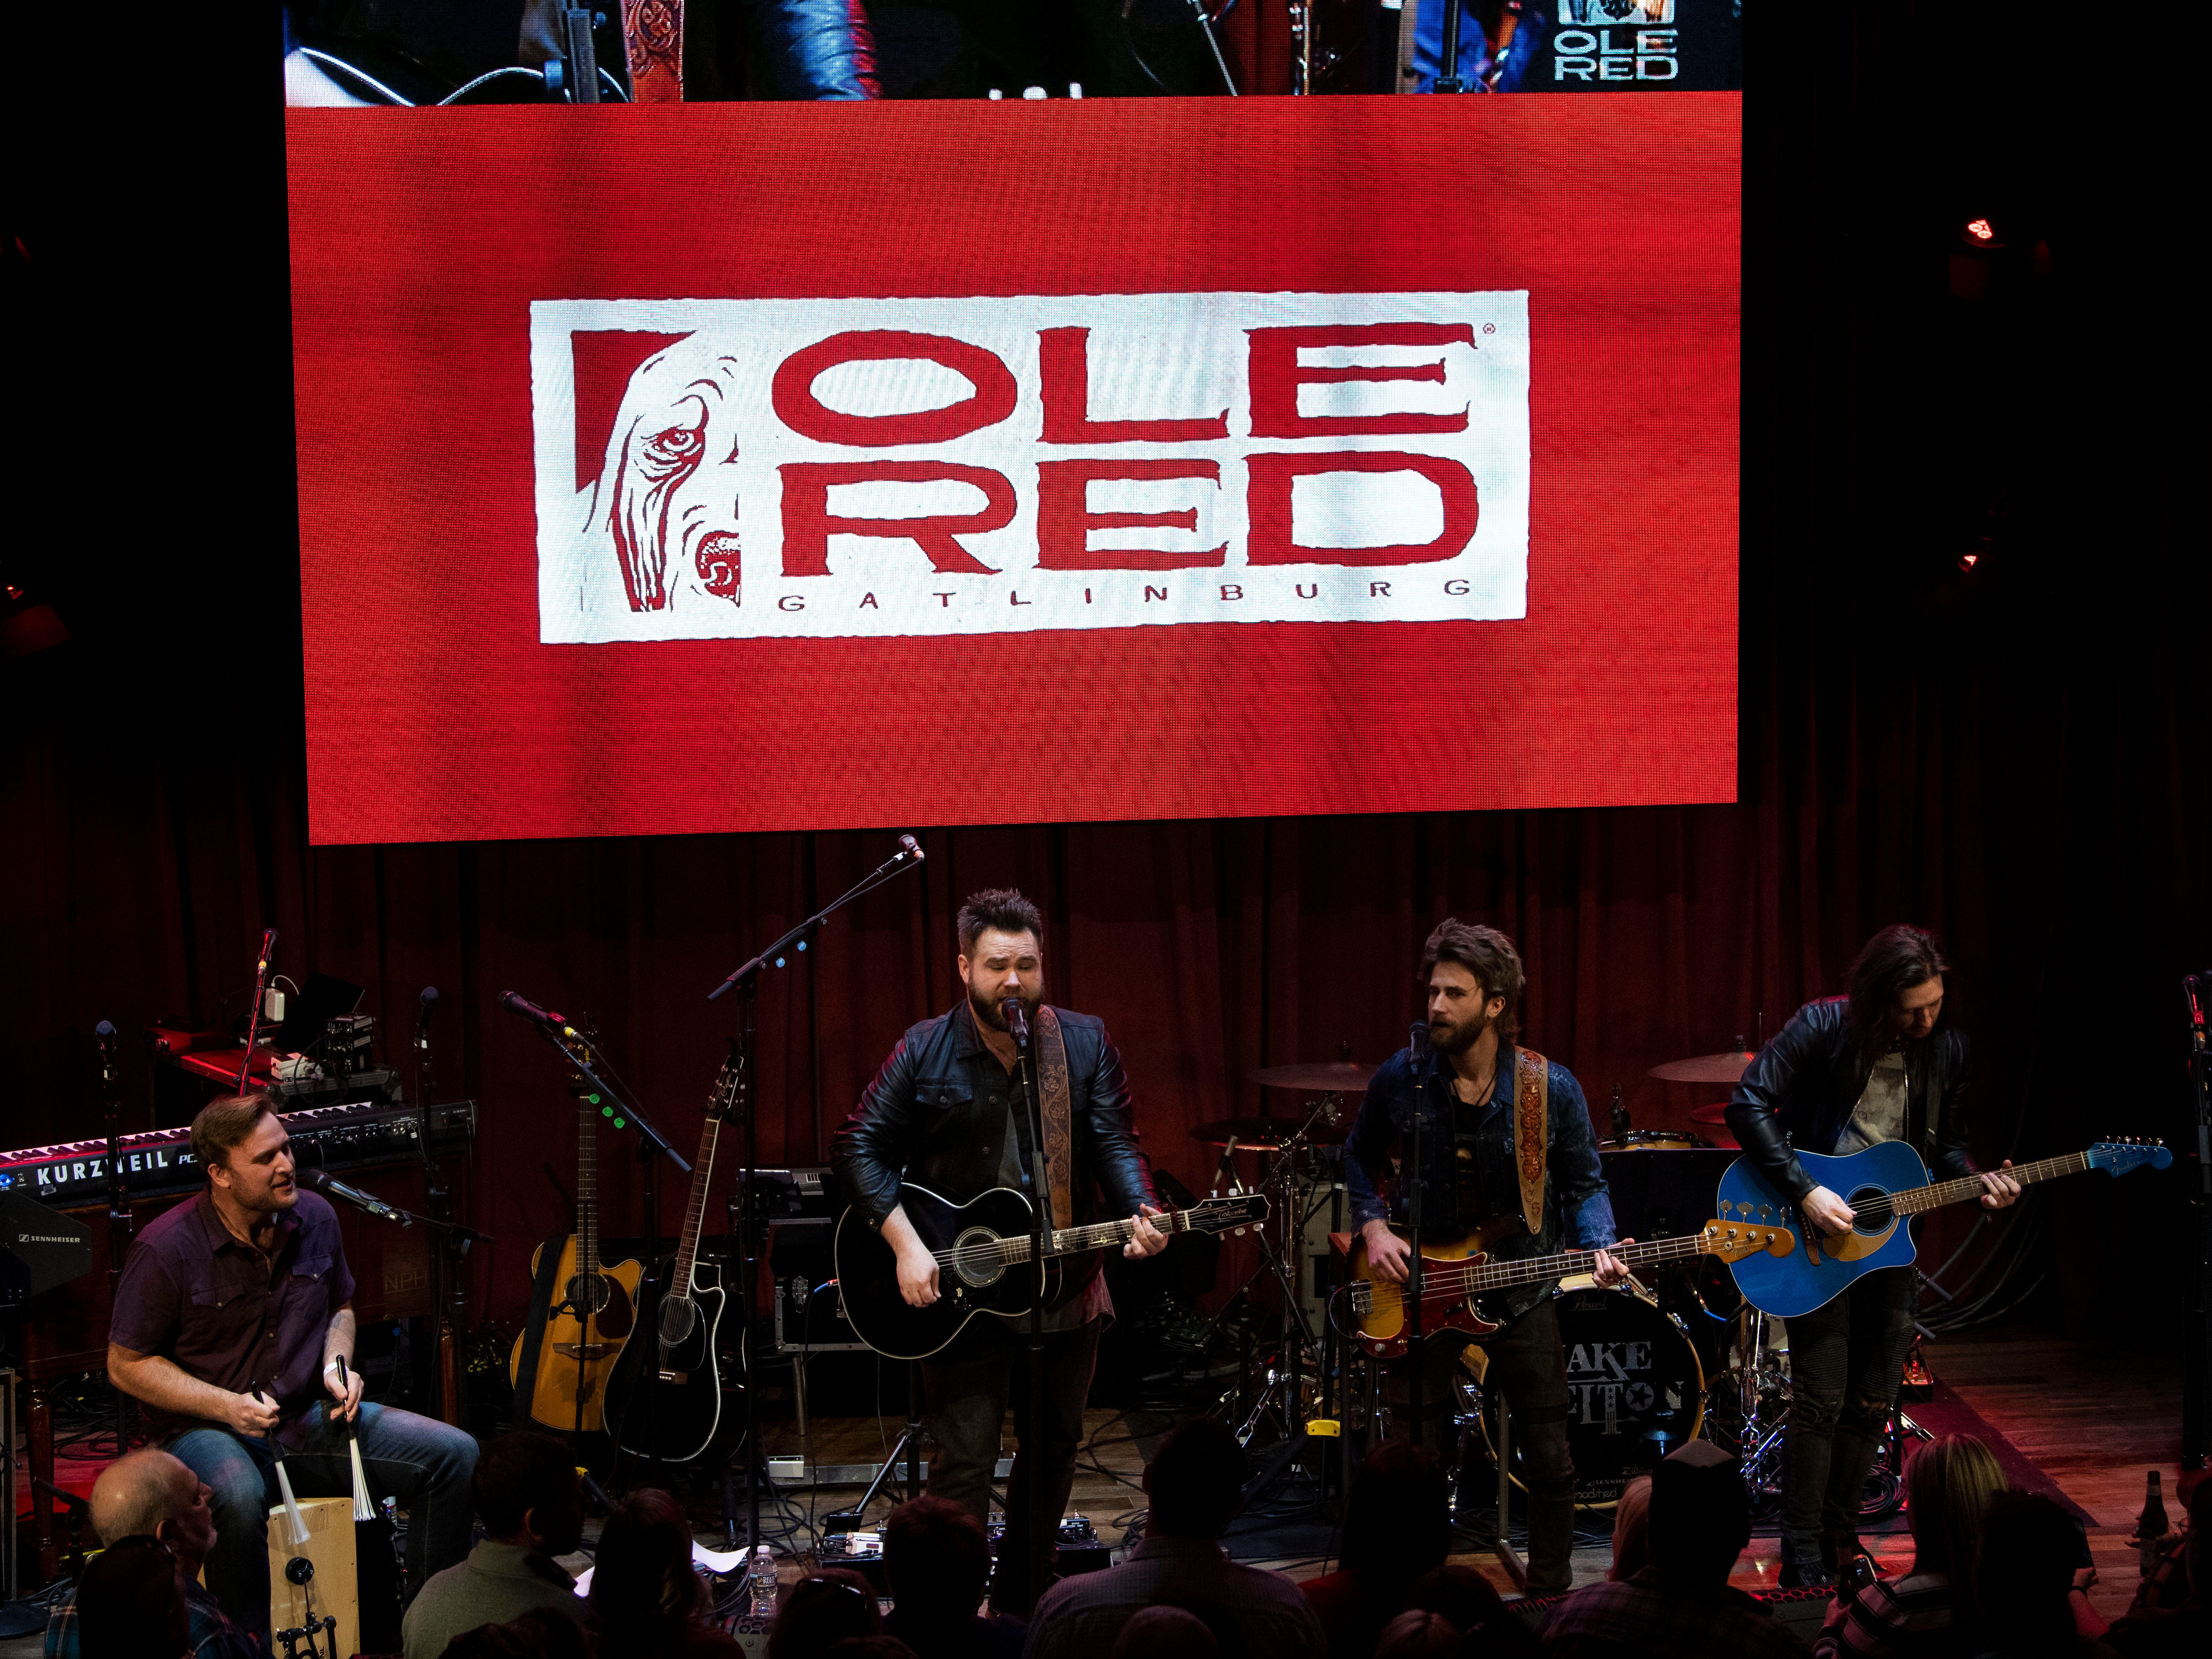 The Voice contestants, The Swon Brothers open for Blake Shelton at the grand opening celebration of Ole Red Gatlinburg on Wednesday, March 13, 2019.